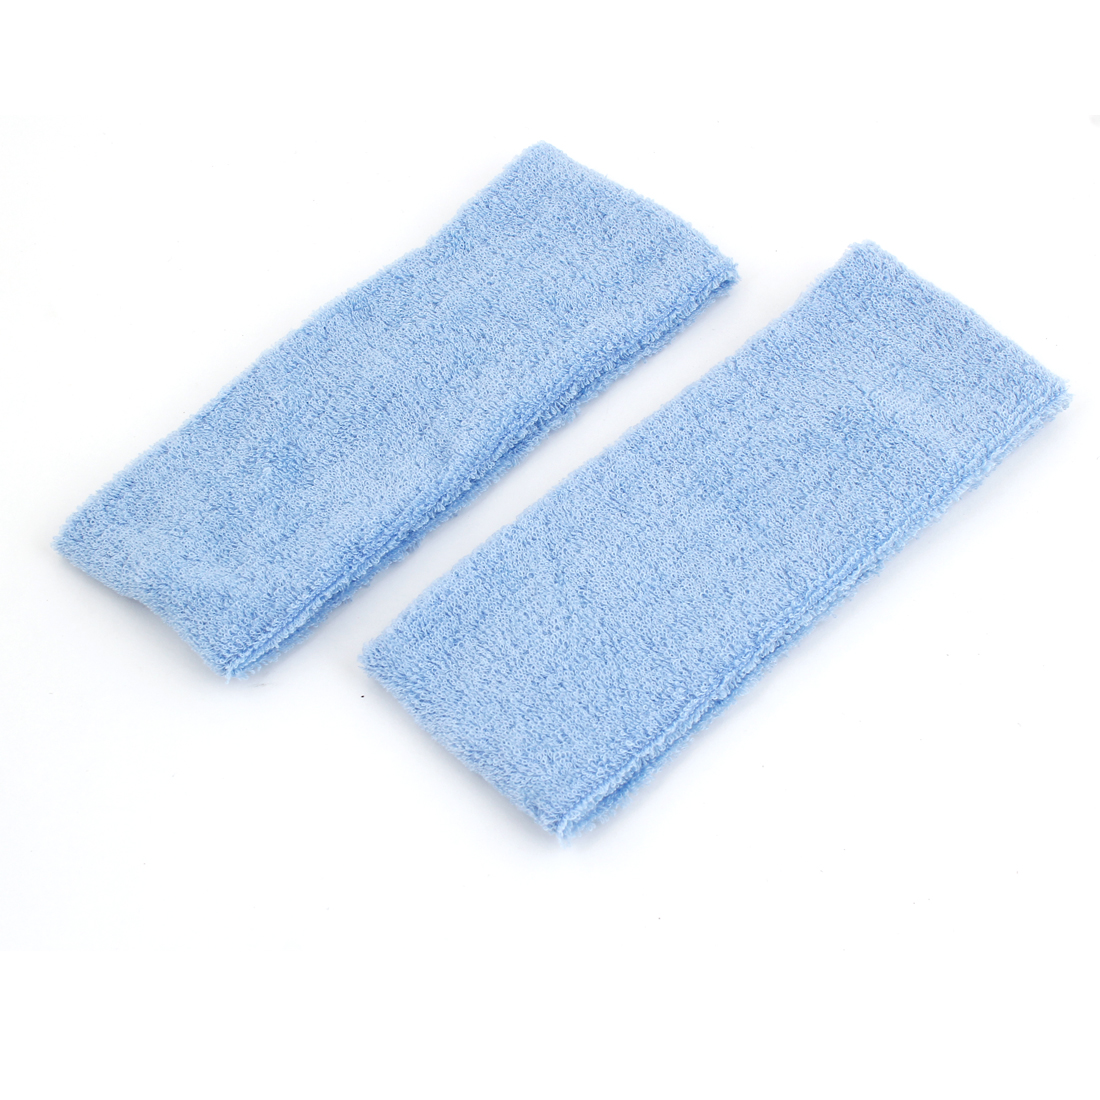 Lady Terry Elastic Fabric Headband Hair Holder Band Blue 2 Pcs